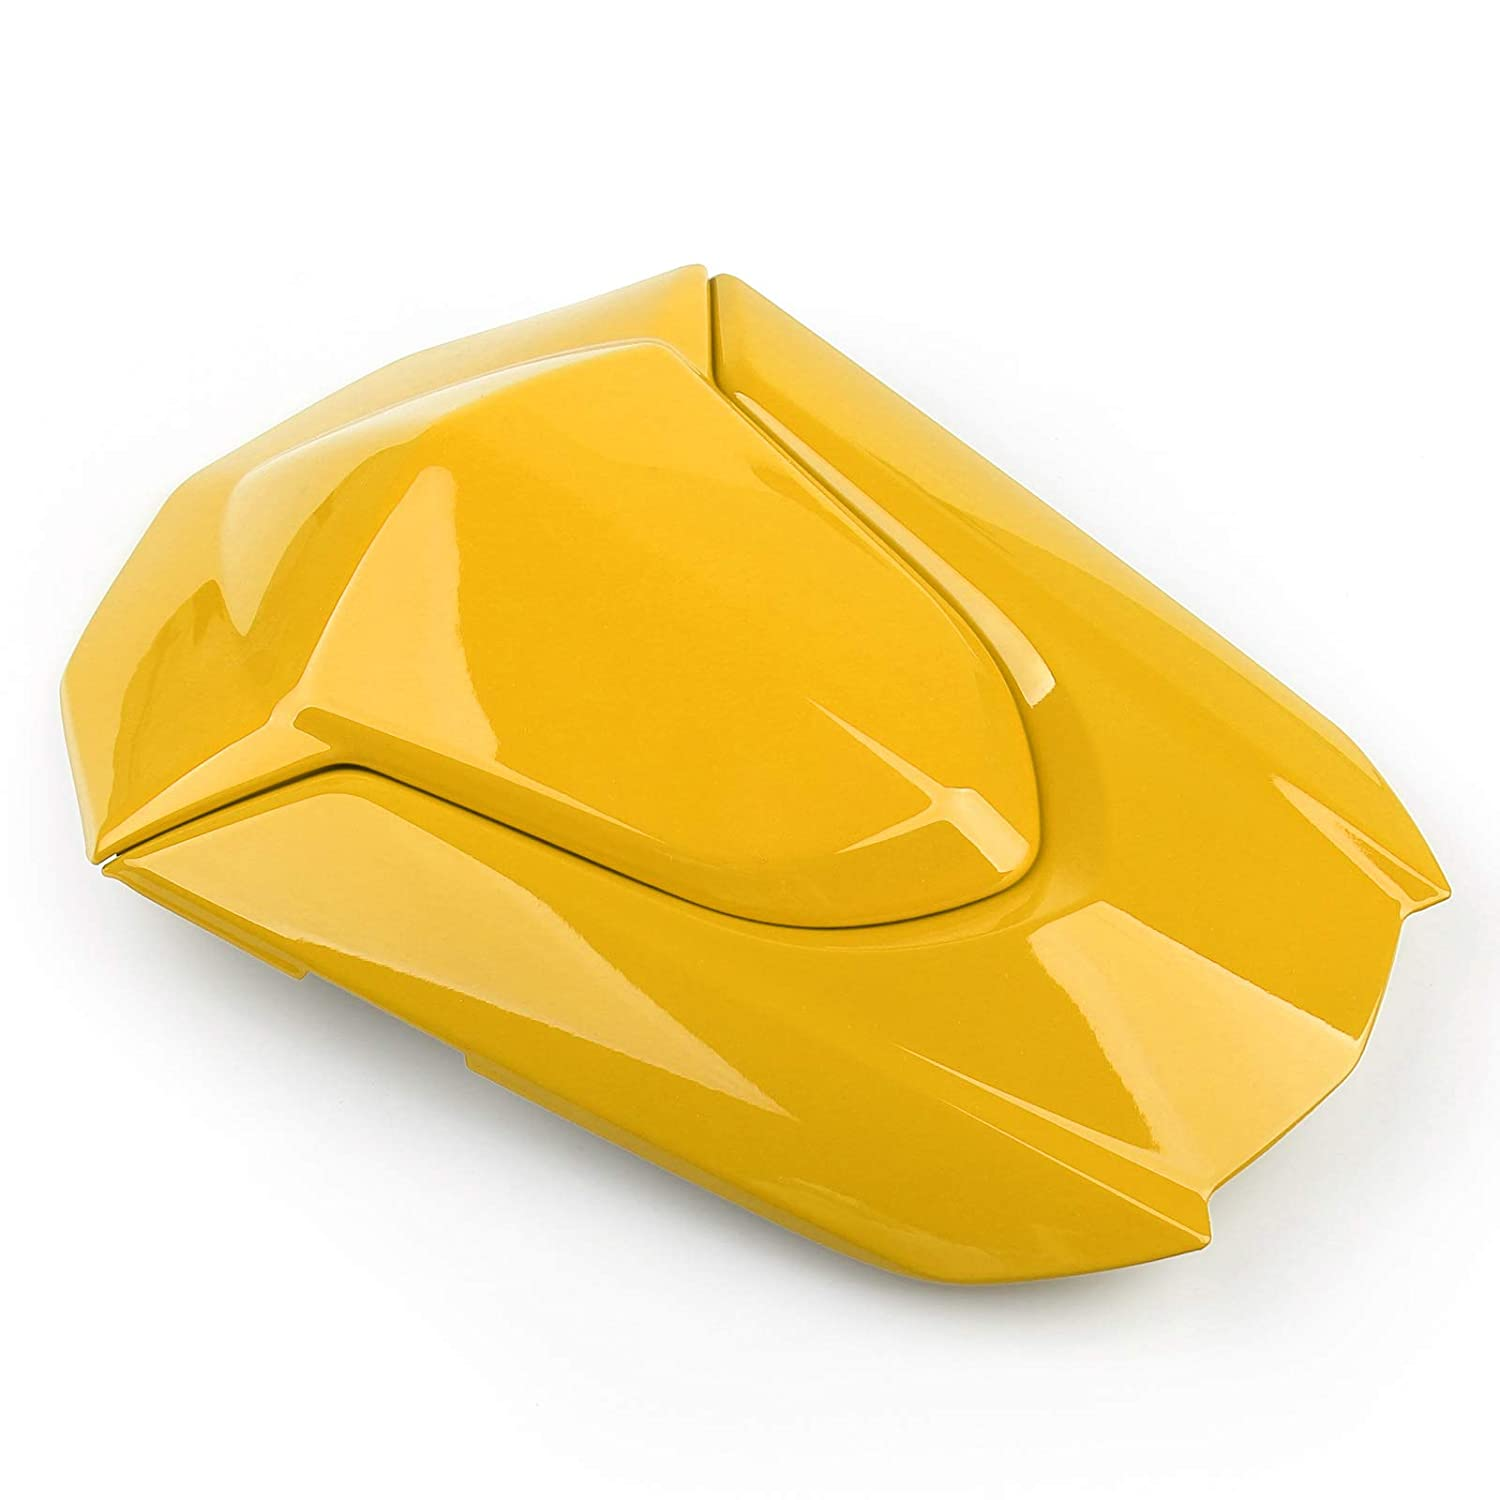 Areyourshop Rear Pillion Seat Cowl Fairing Cover For GSXR1000 2009-2016 K9